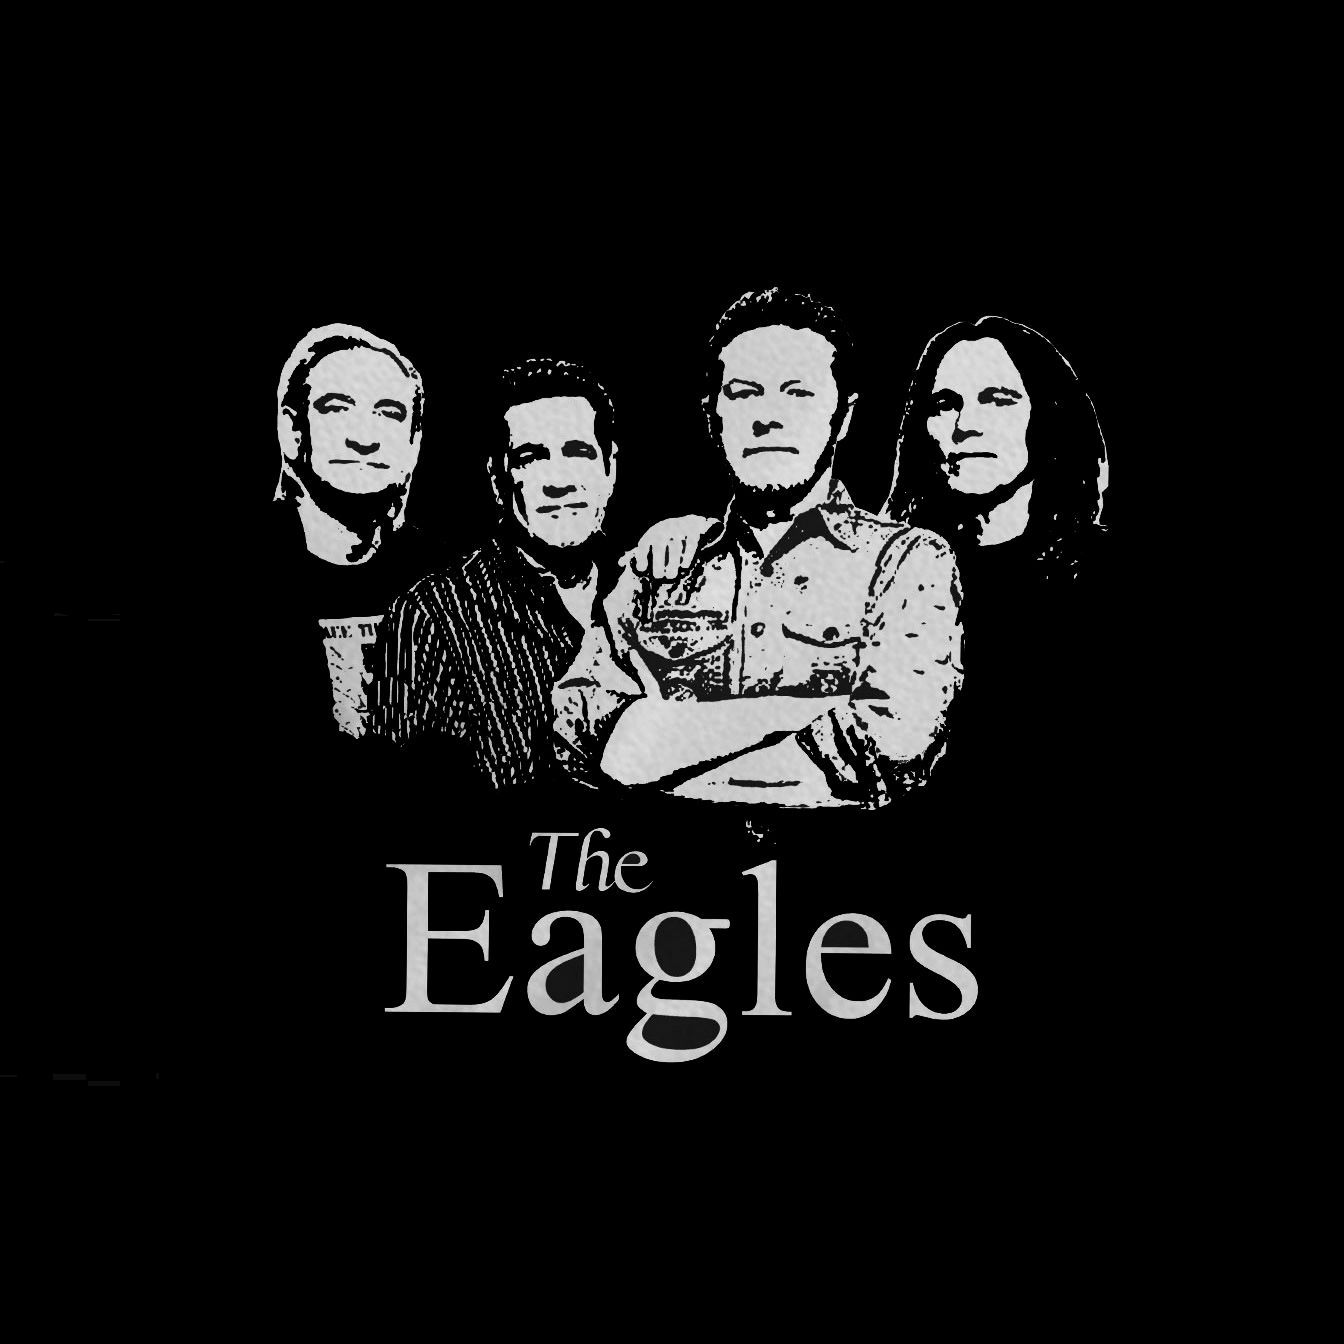 Eagles Band Wallpapers.